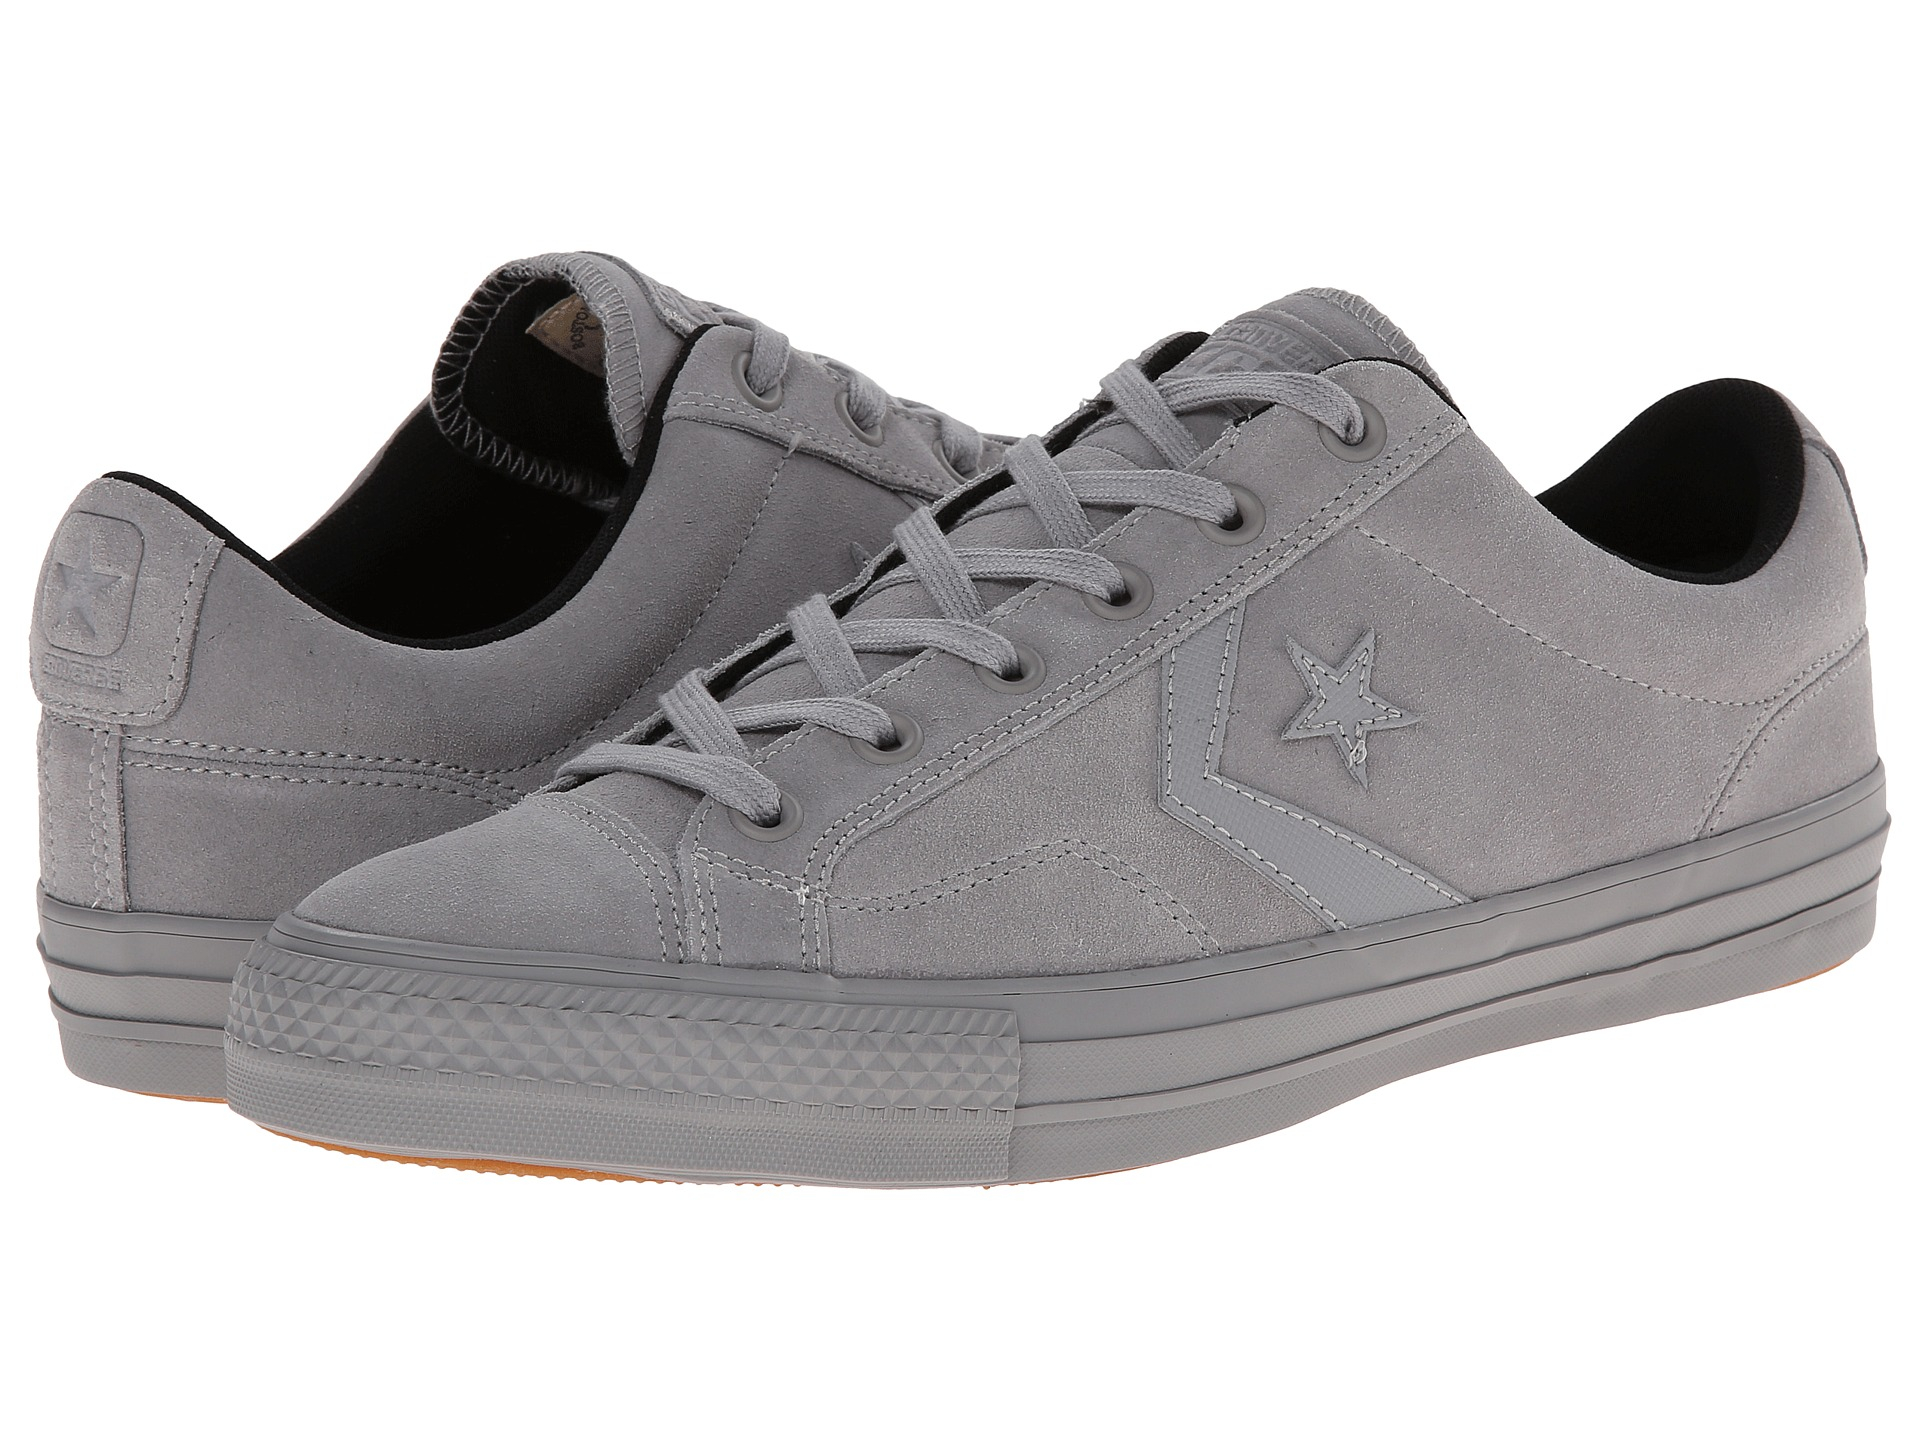 0bcc90e46d8 ... where to buy lyst converse star player pro suede in gray for men f75f6  ca084